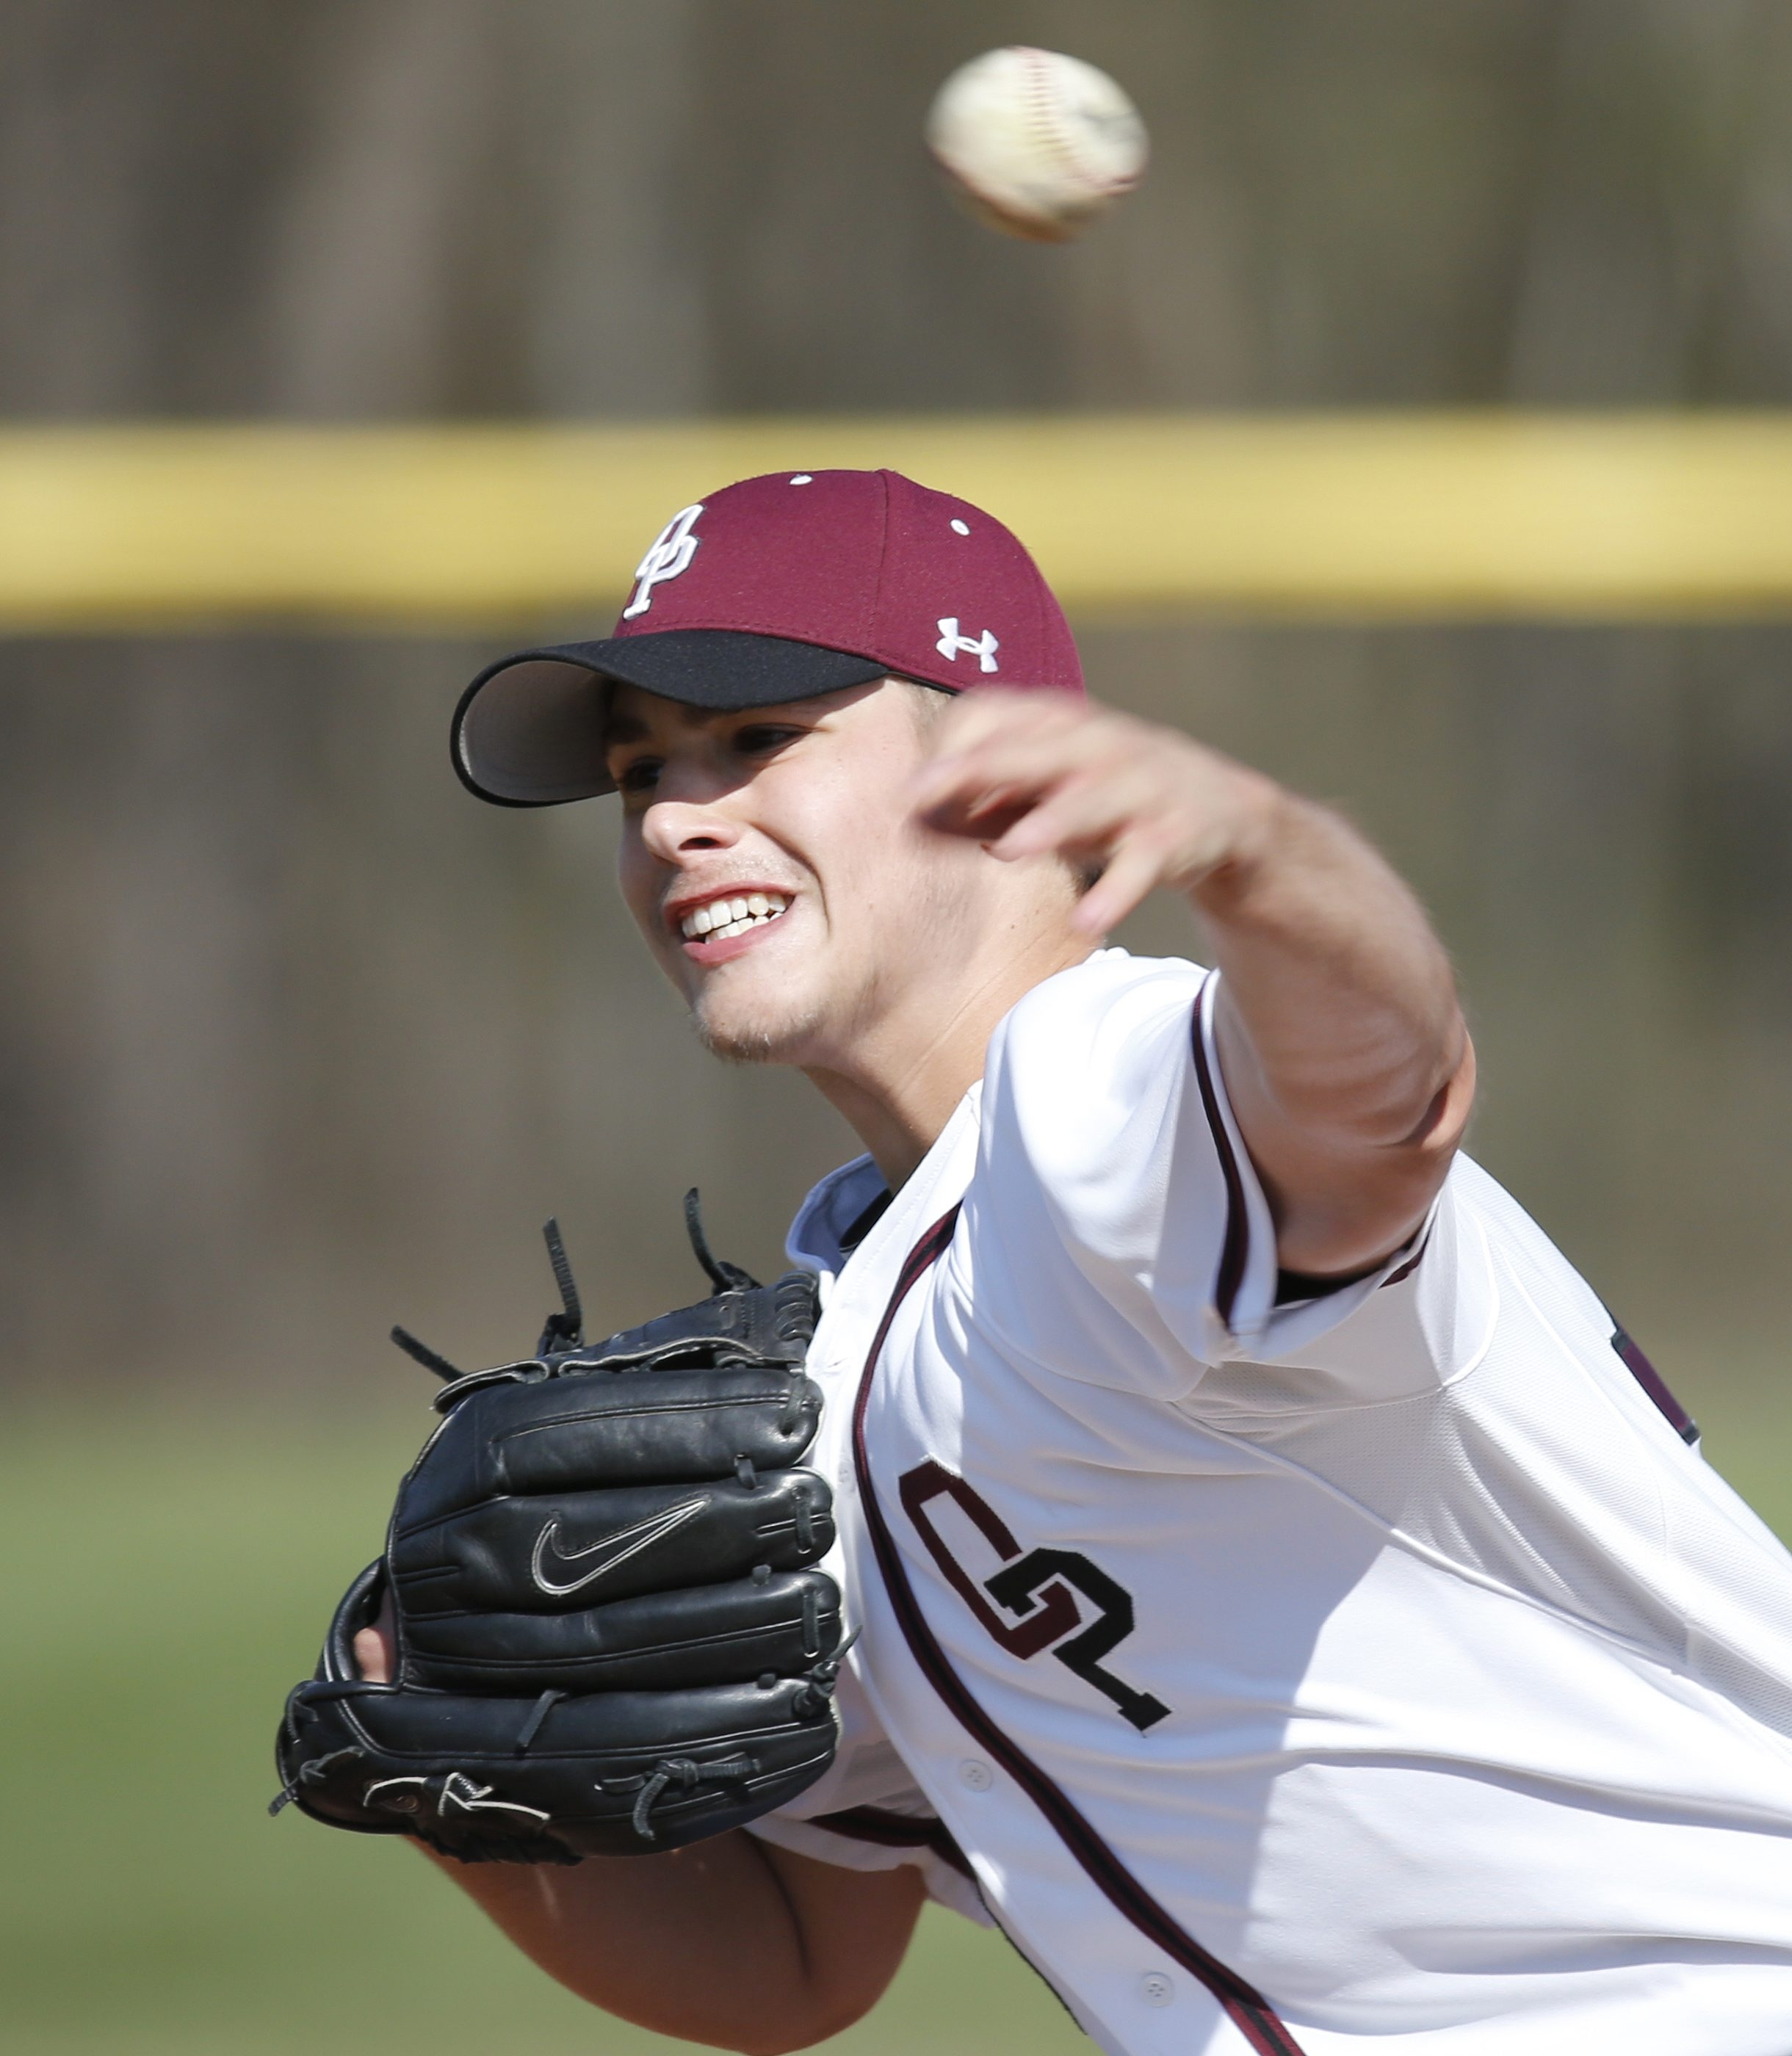 Orchard Park left-hander Ben Wereski, who started last year's sectional final, has a 0.60 ERA and 3-0 mark.